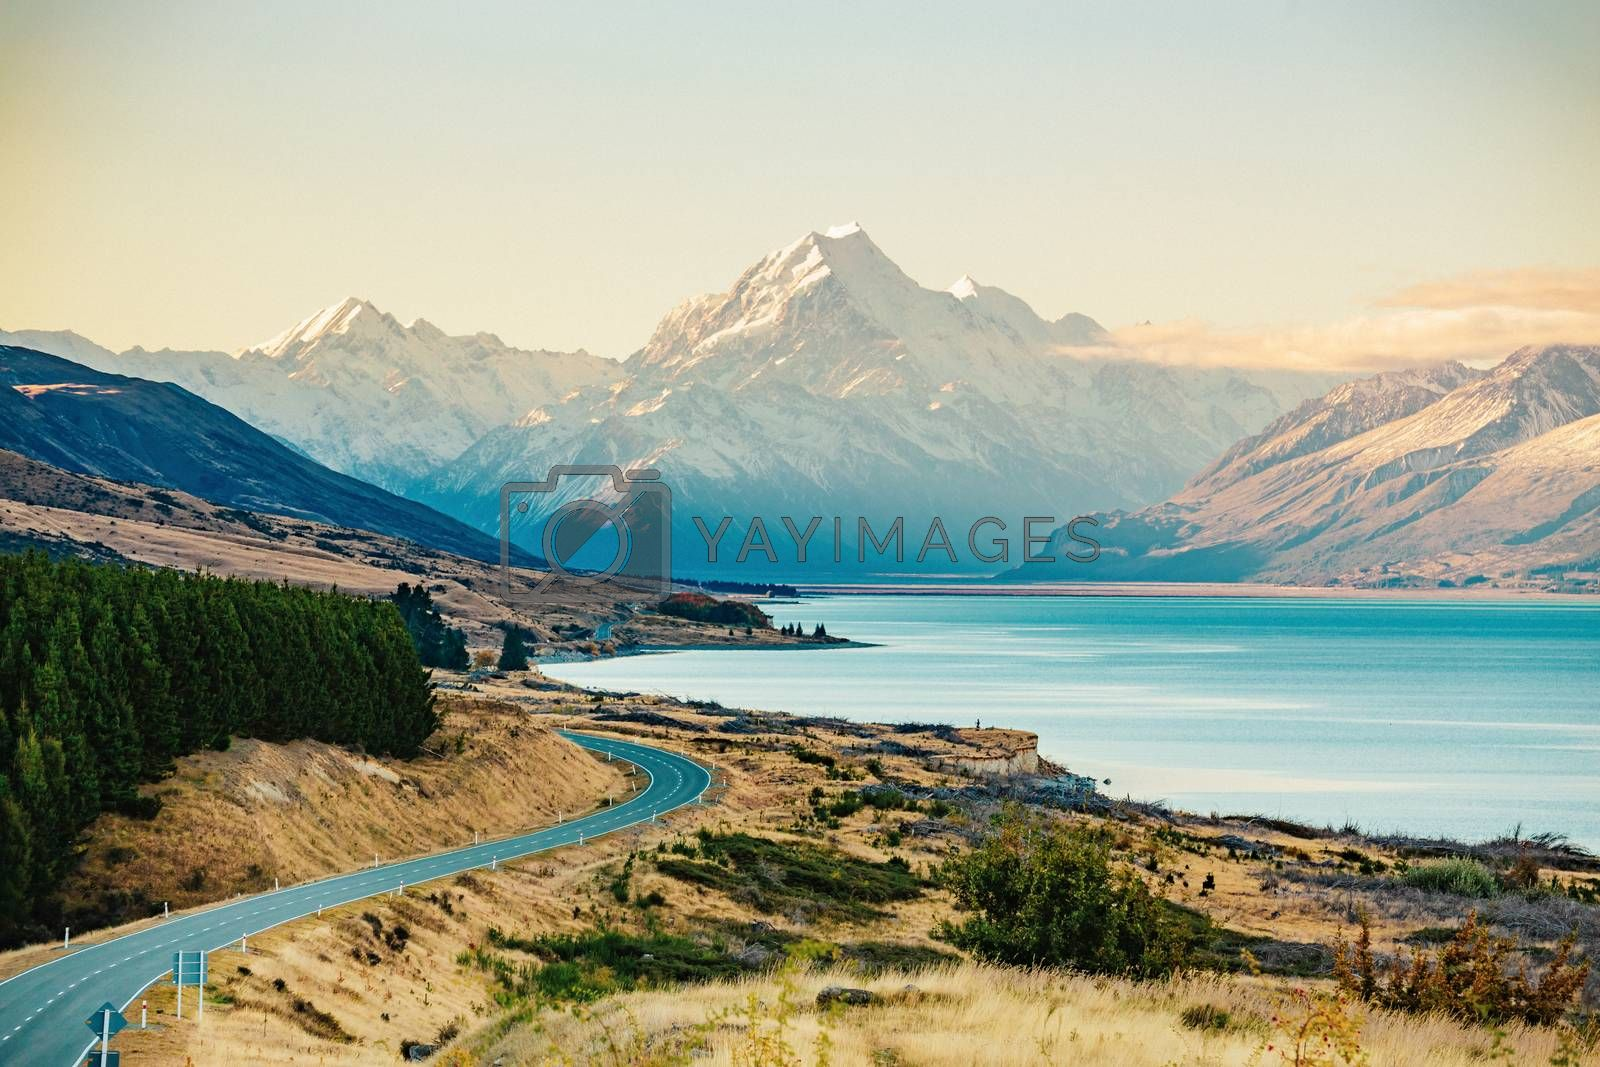 Road to Mt Cook, the highest mountain in New Zealand. Scenic highway drive along Lake Pukaki in Aoraki Mt Cook National Park, South Island of New Zealand.